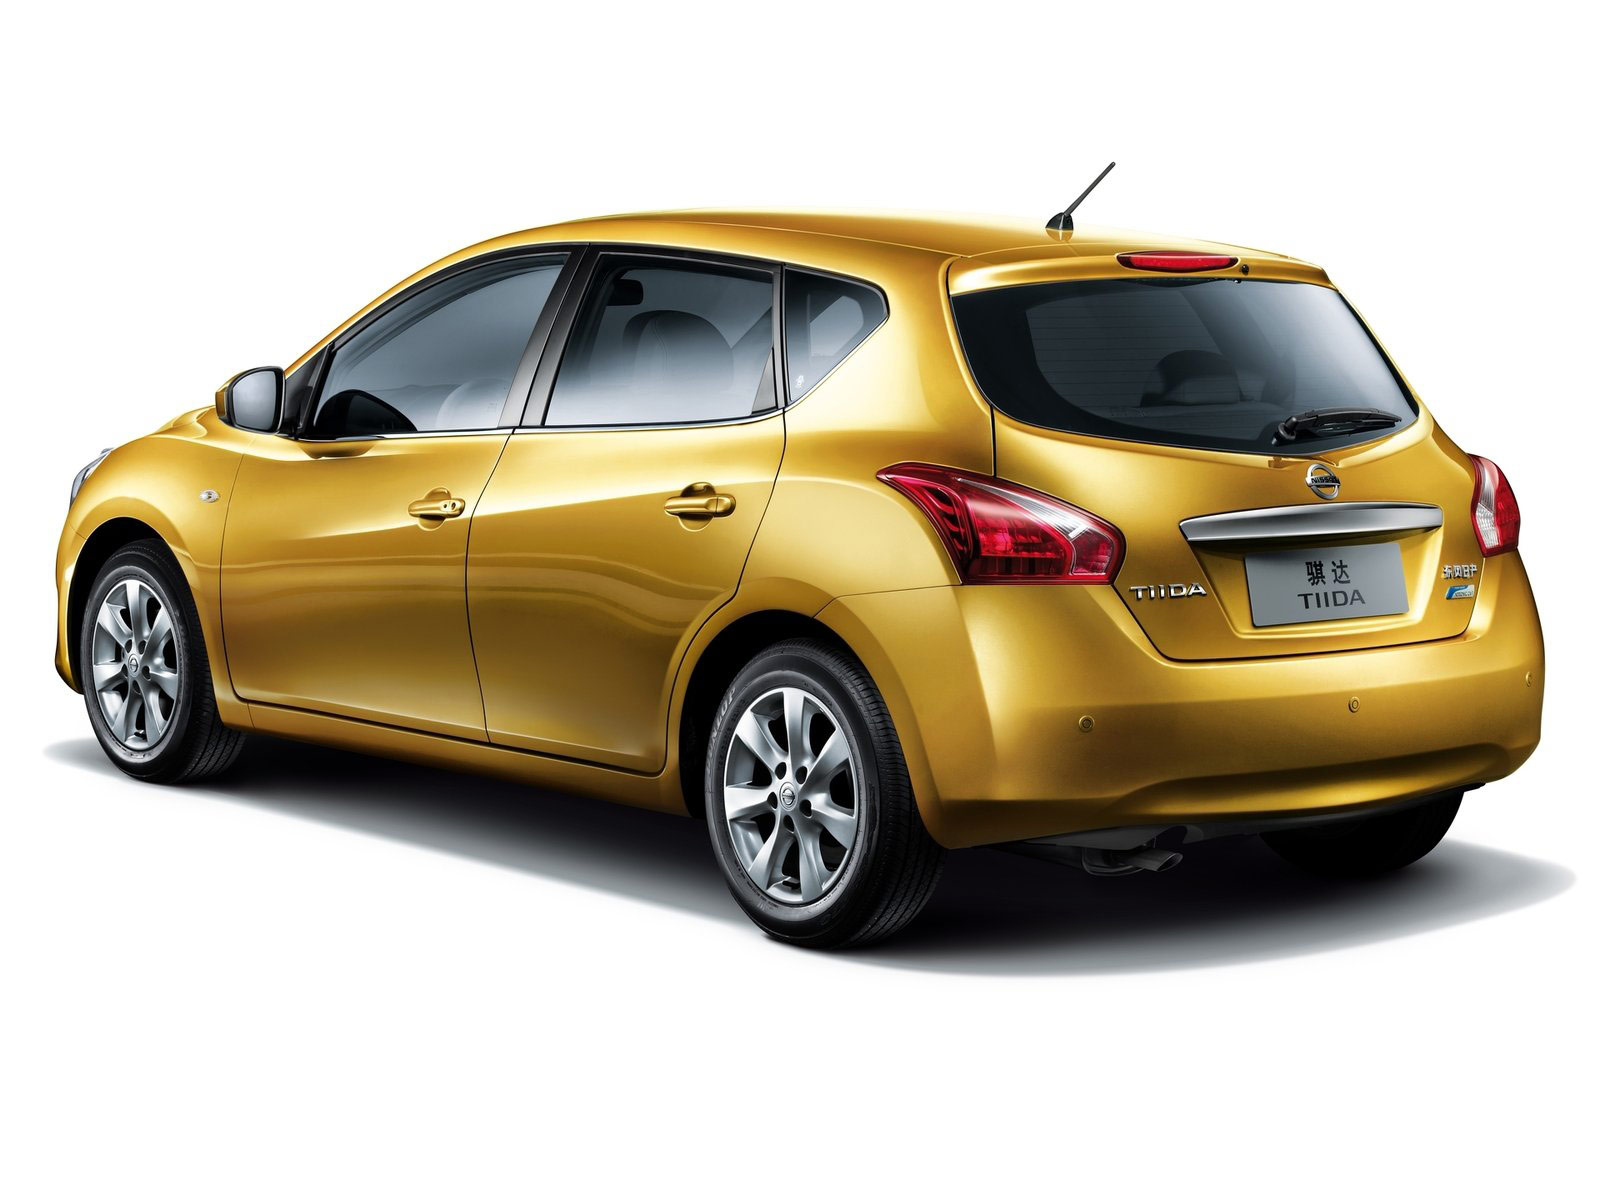 2012 NISSAN Tiida Japanese car wallpapers, review